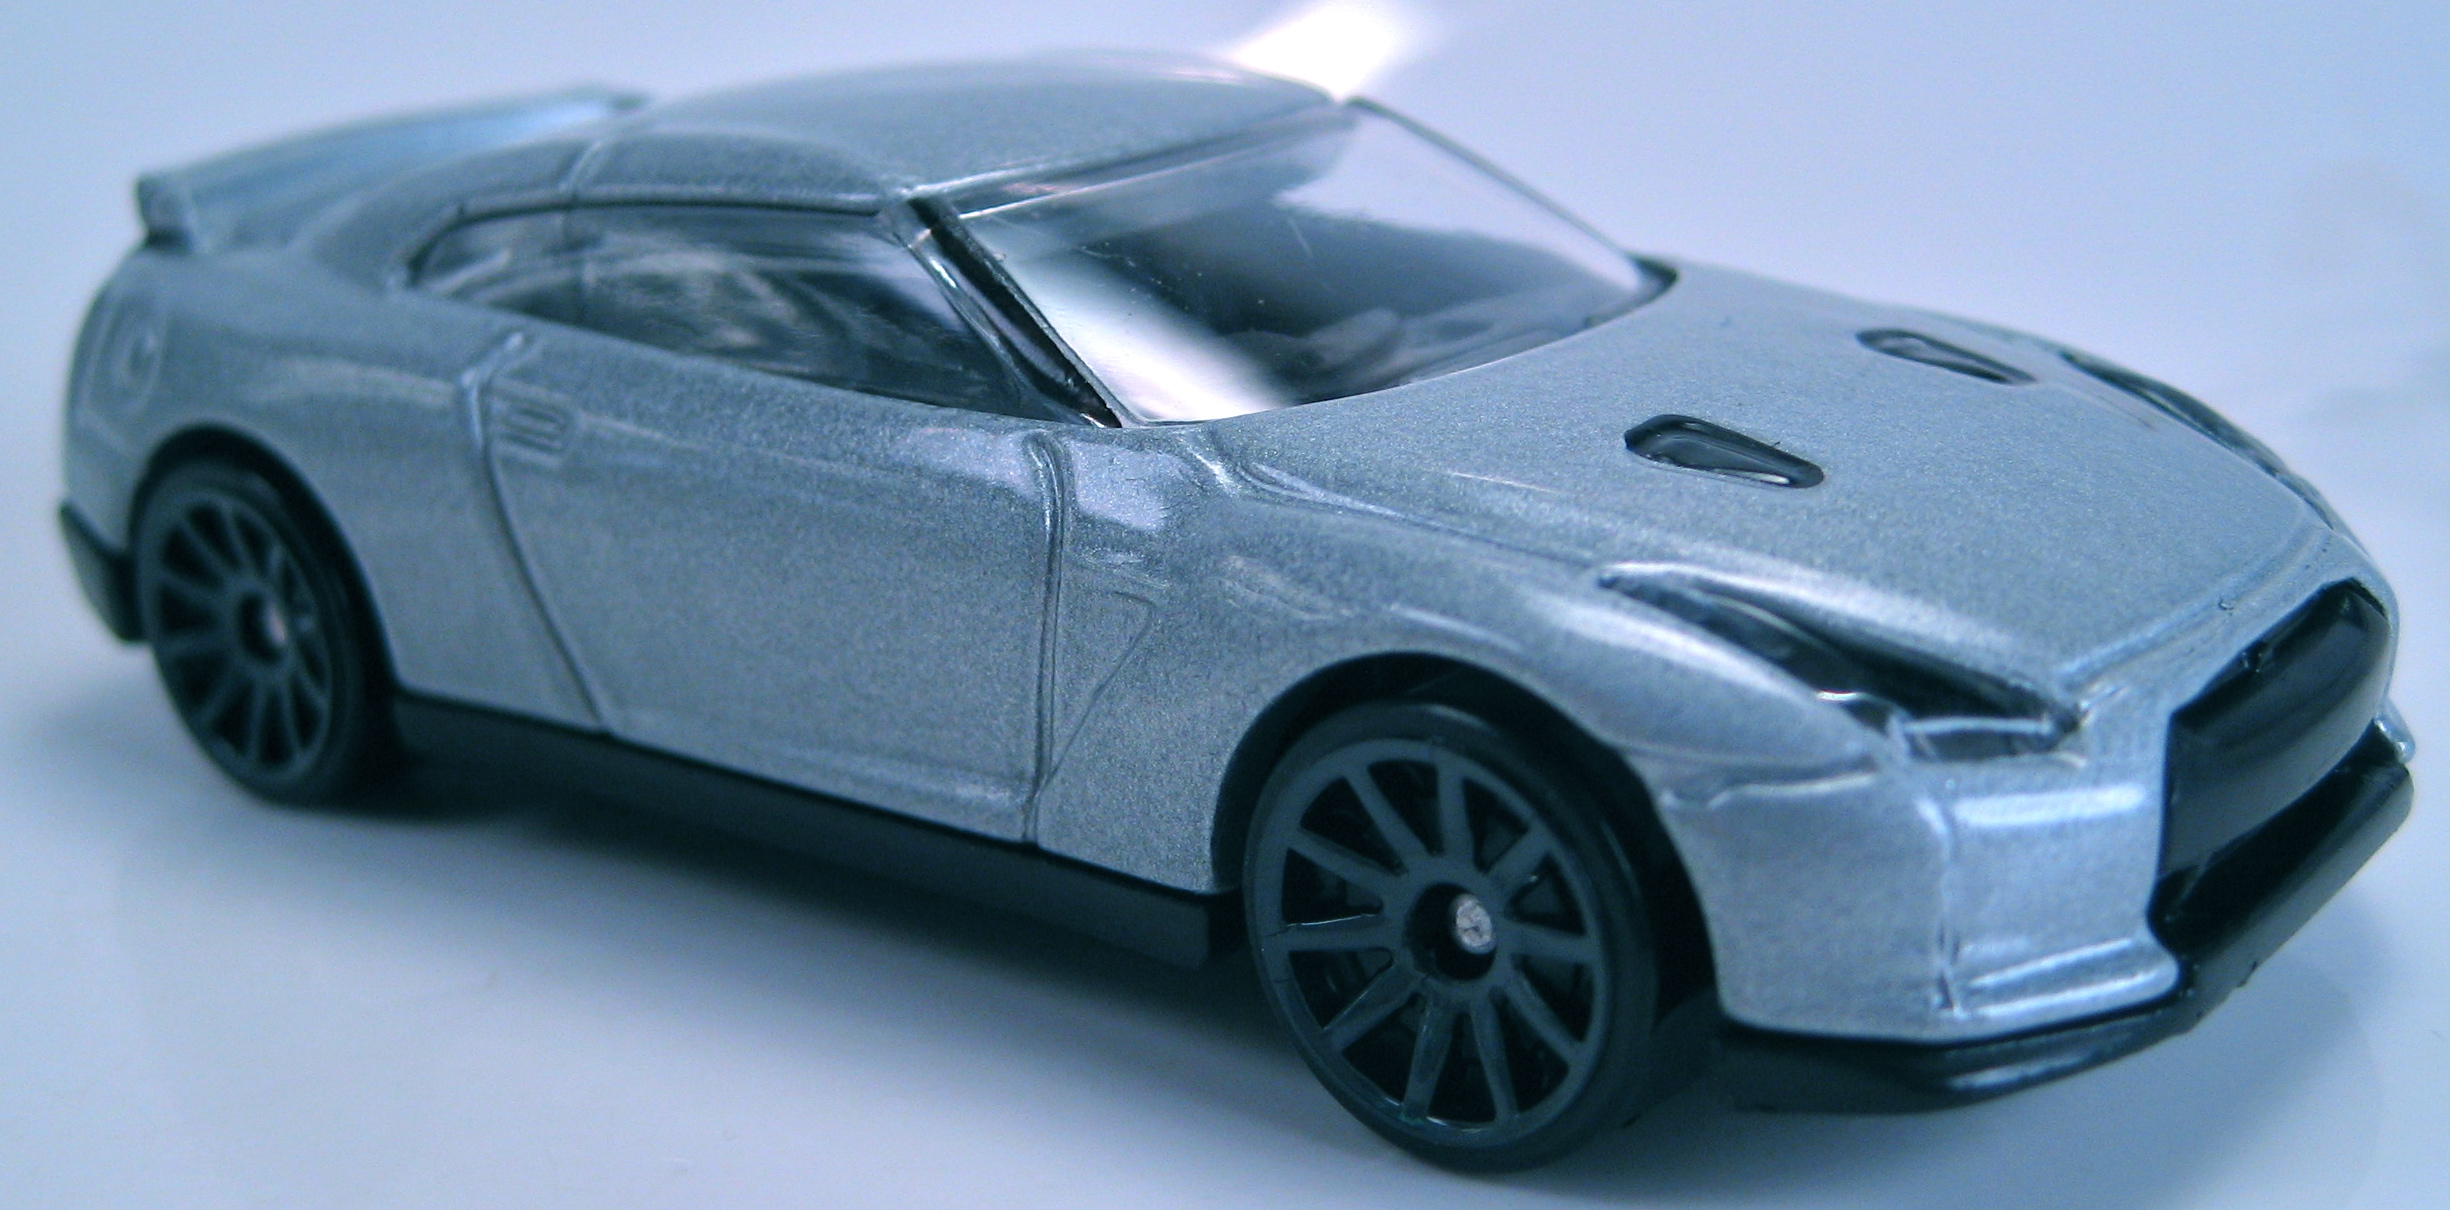 2013 - Rare Hot Wheels Cars 2013